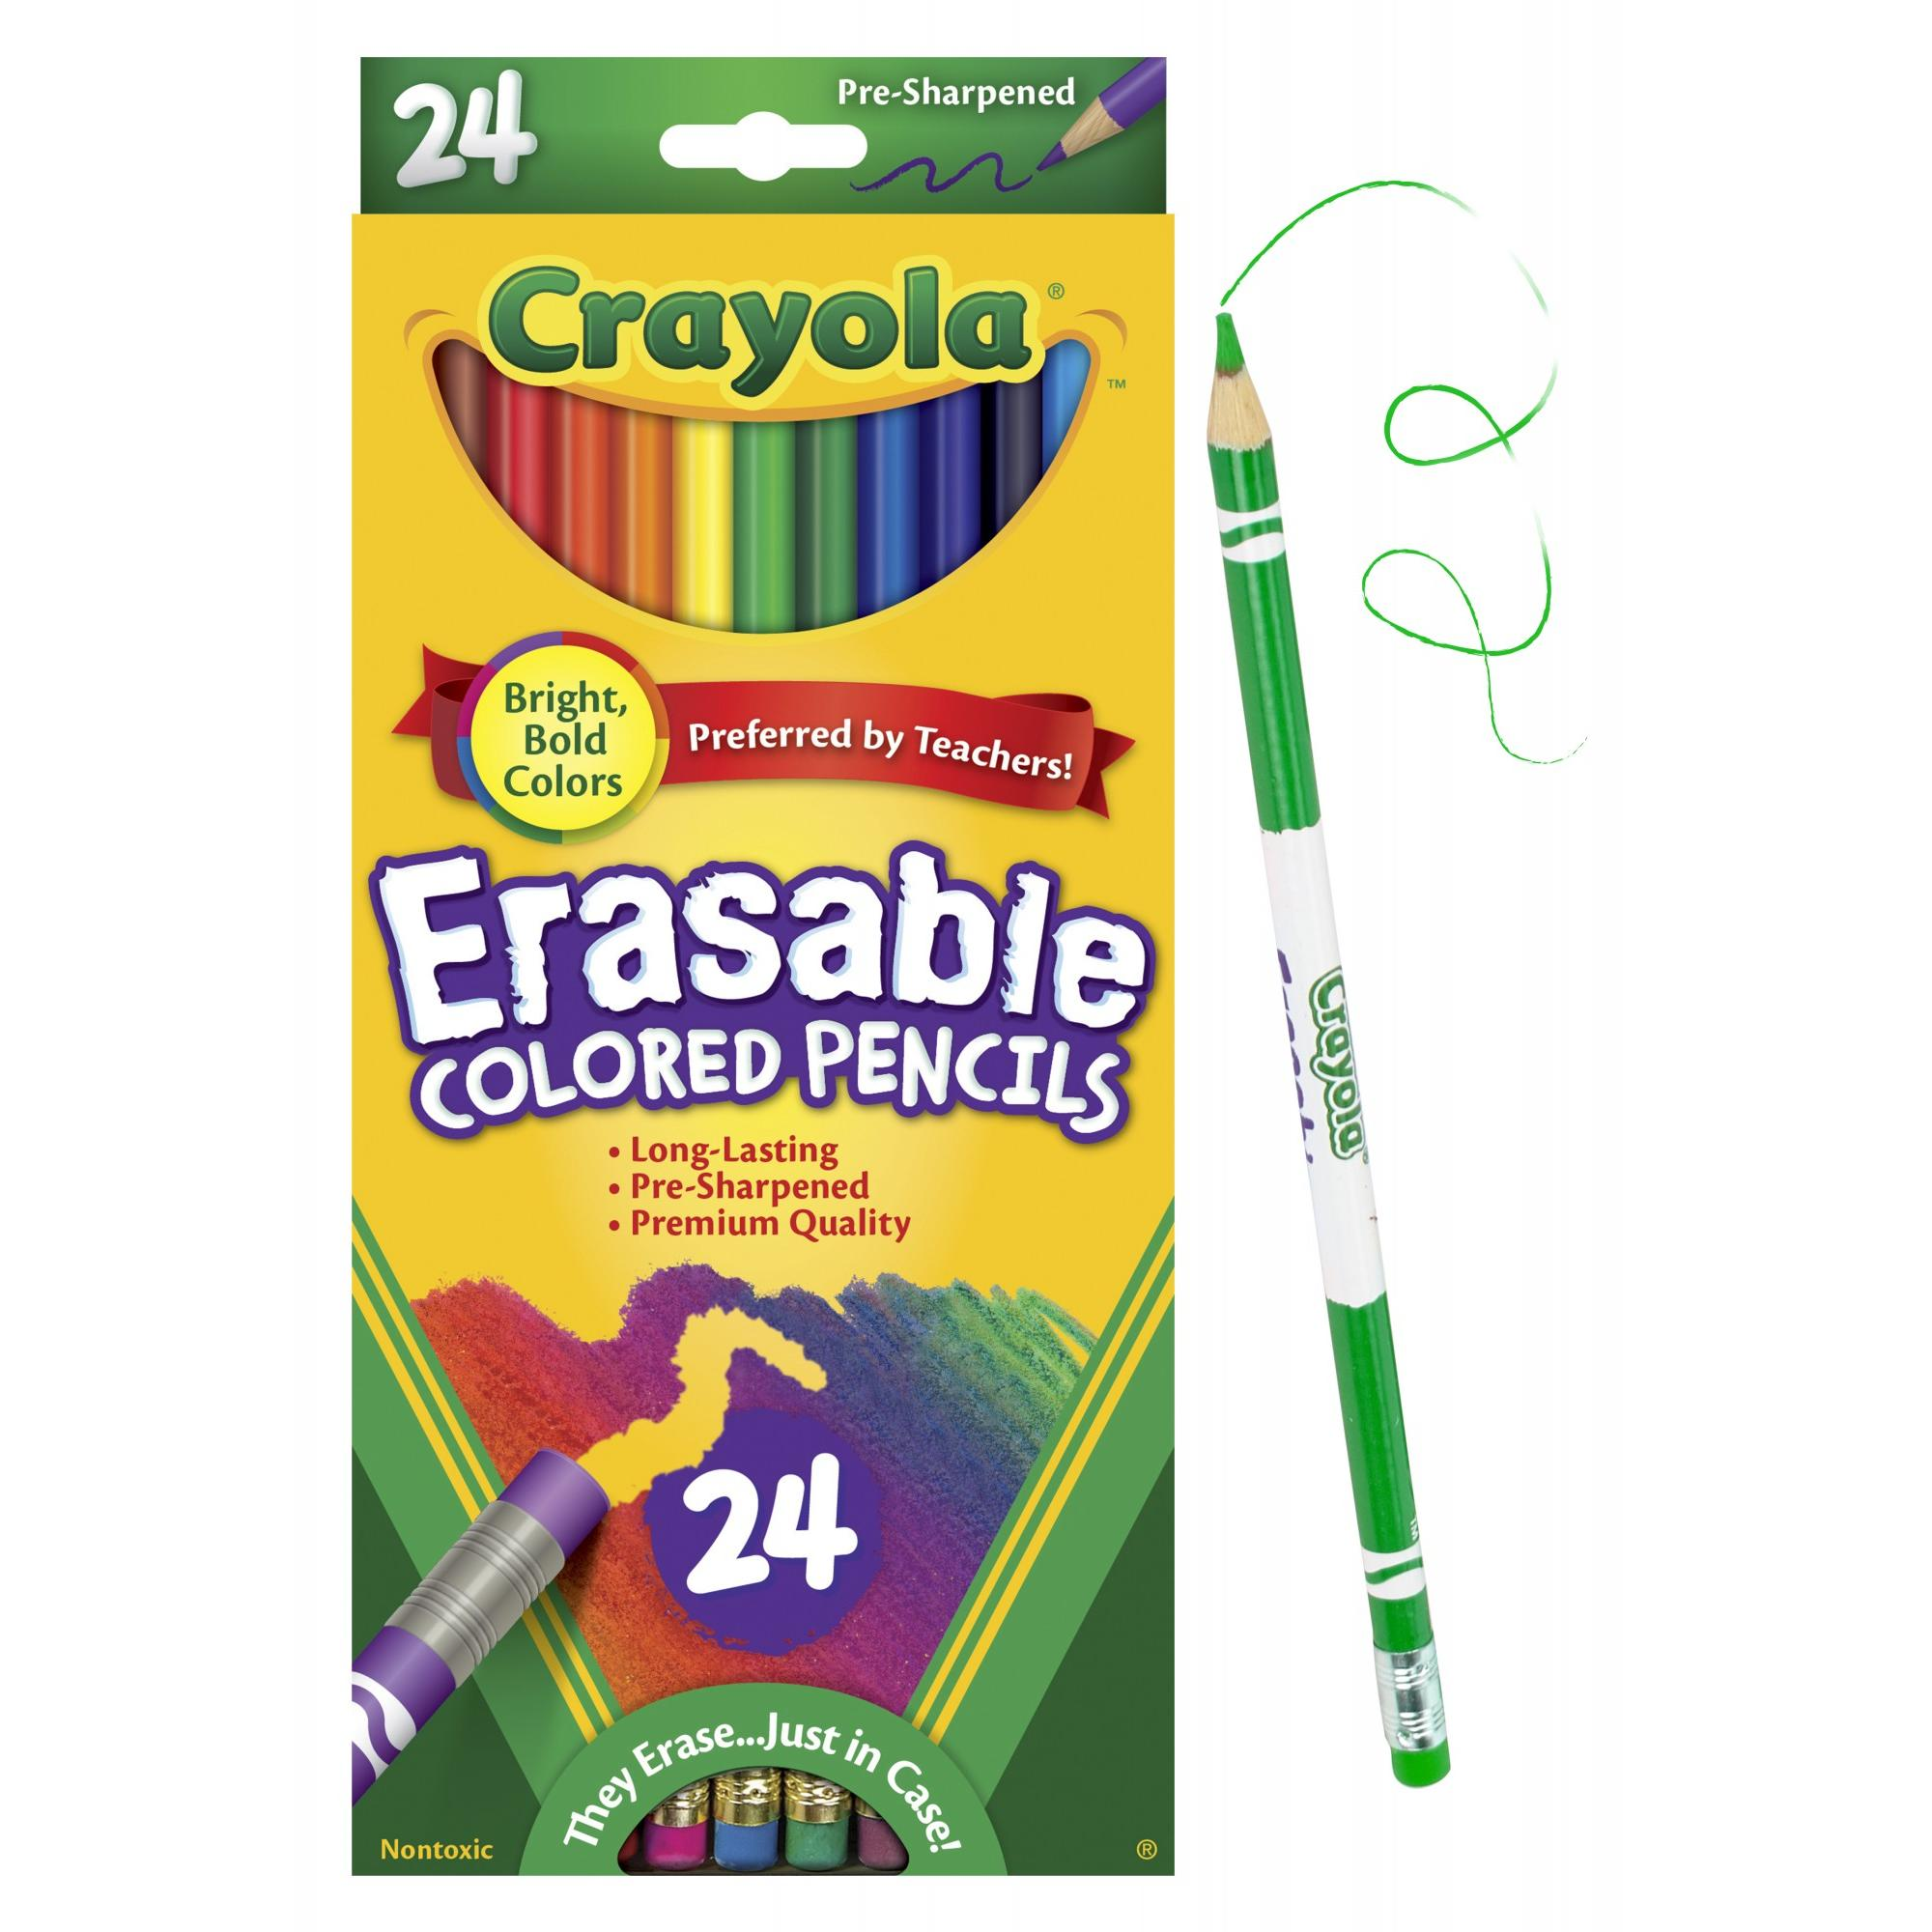 Crayola Eraseable Colored Pencils, 24 Count